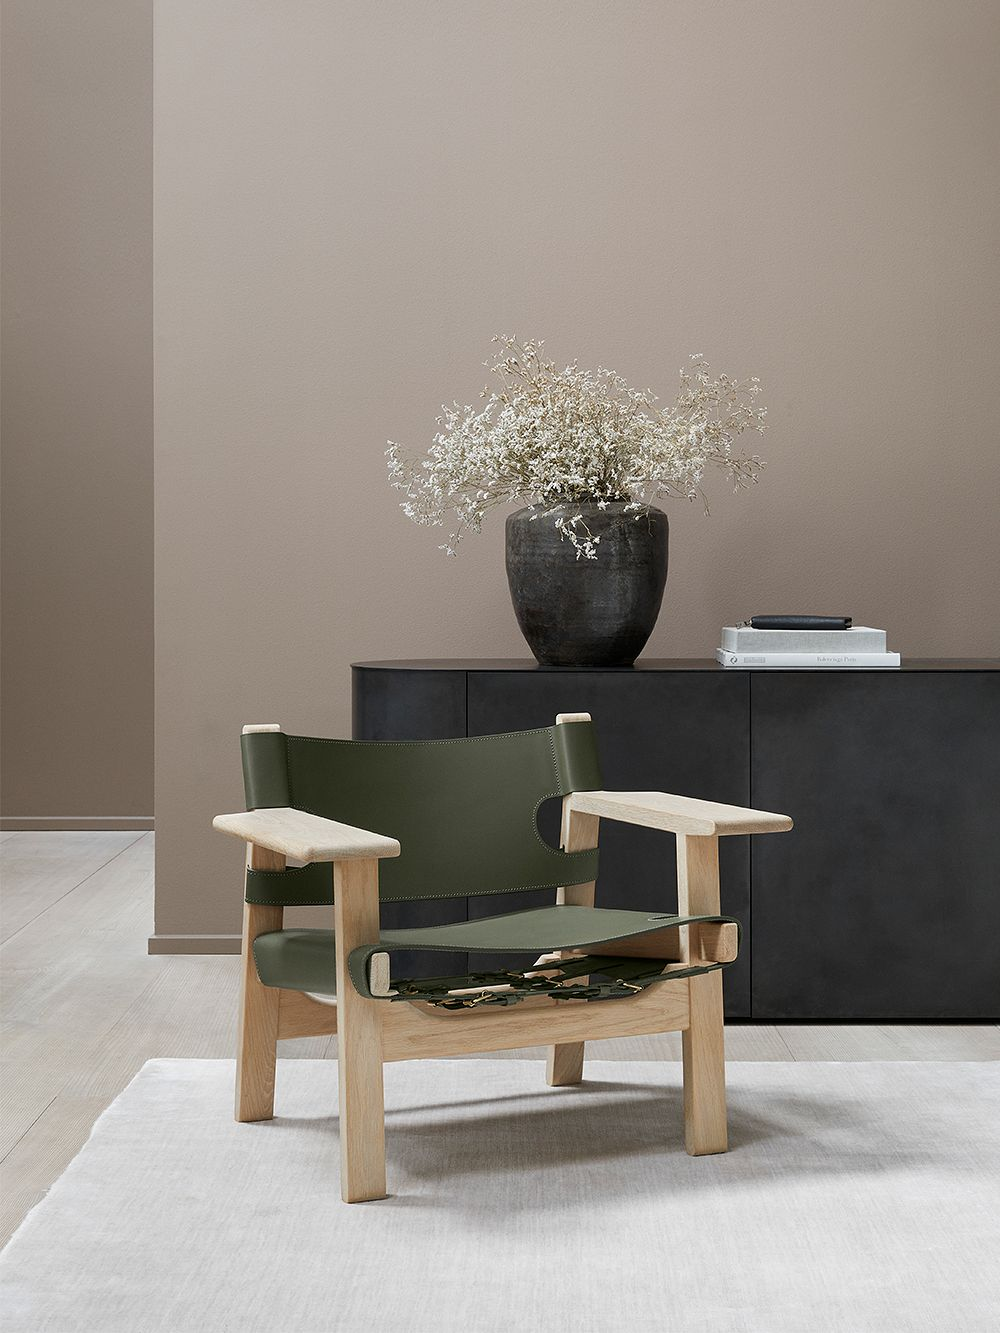 Fredericia's The Spanish Chair as a part of the decor.